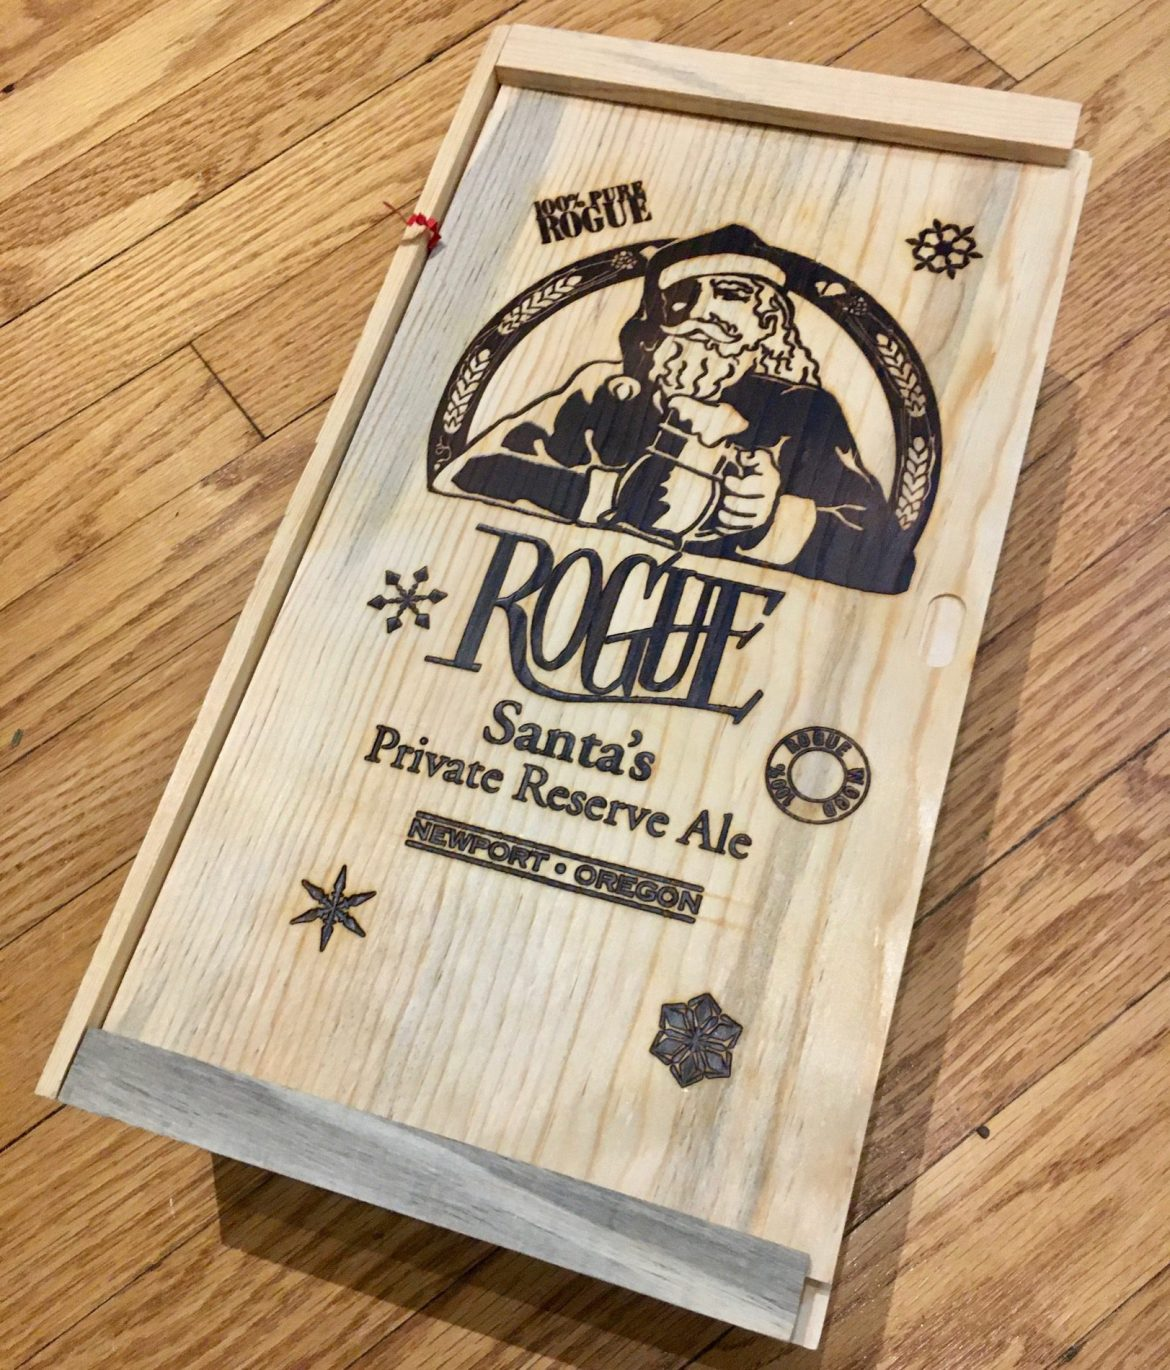 Afternoon Beer Break:  Rogue Santa?s Private Reserve